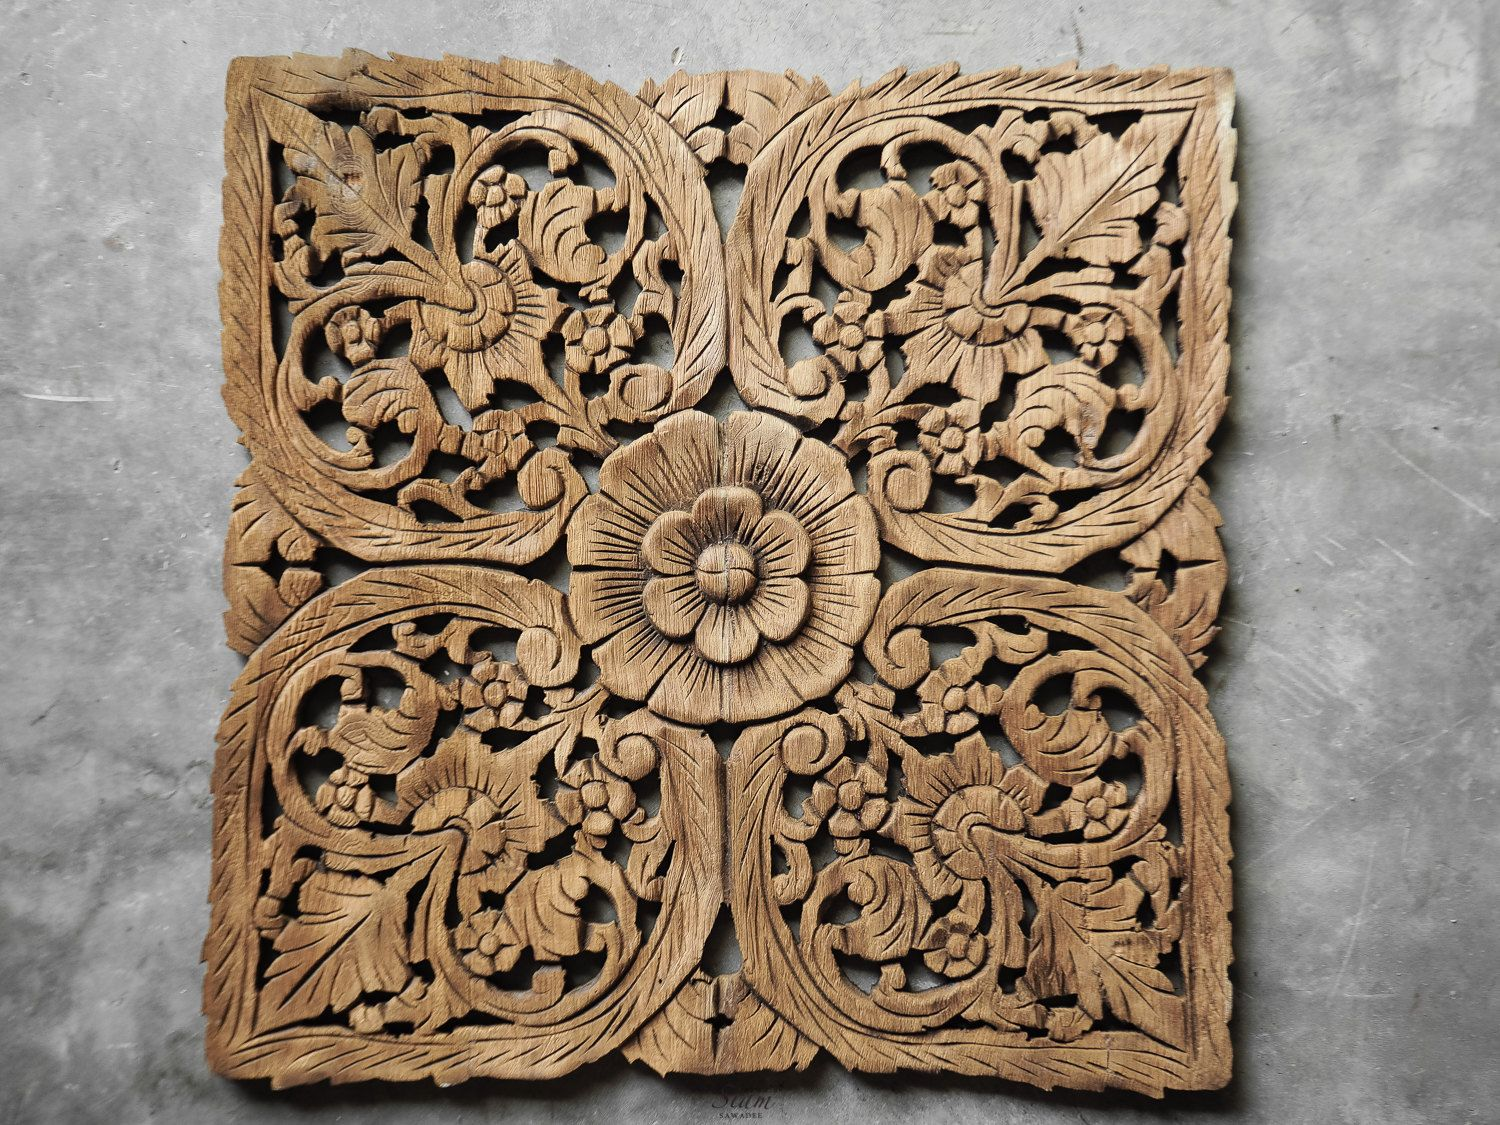 Lotus Wall Art Hanging Carved Panel Wood Carving Plaque